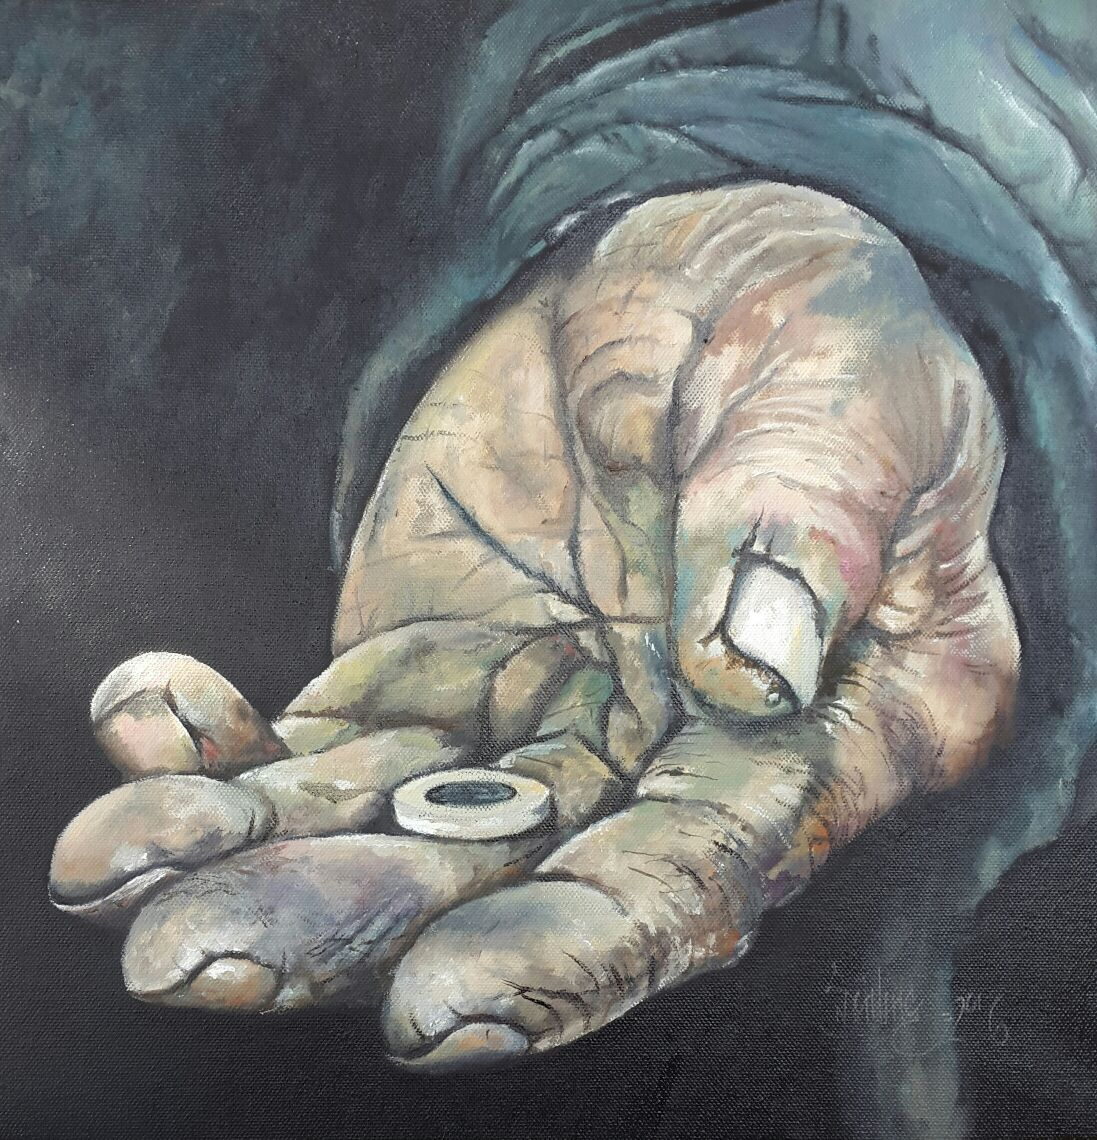 A Giving hand